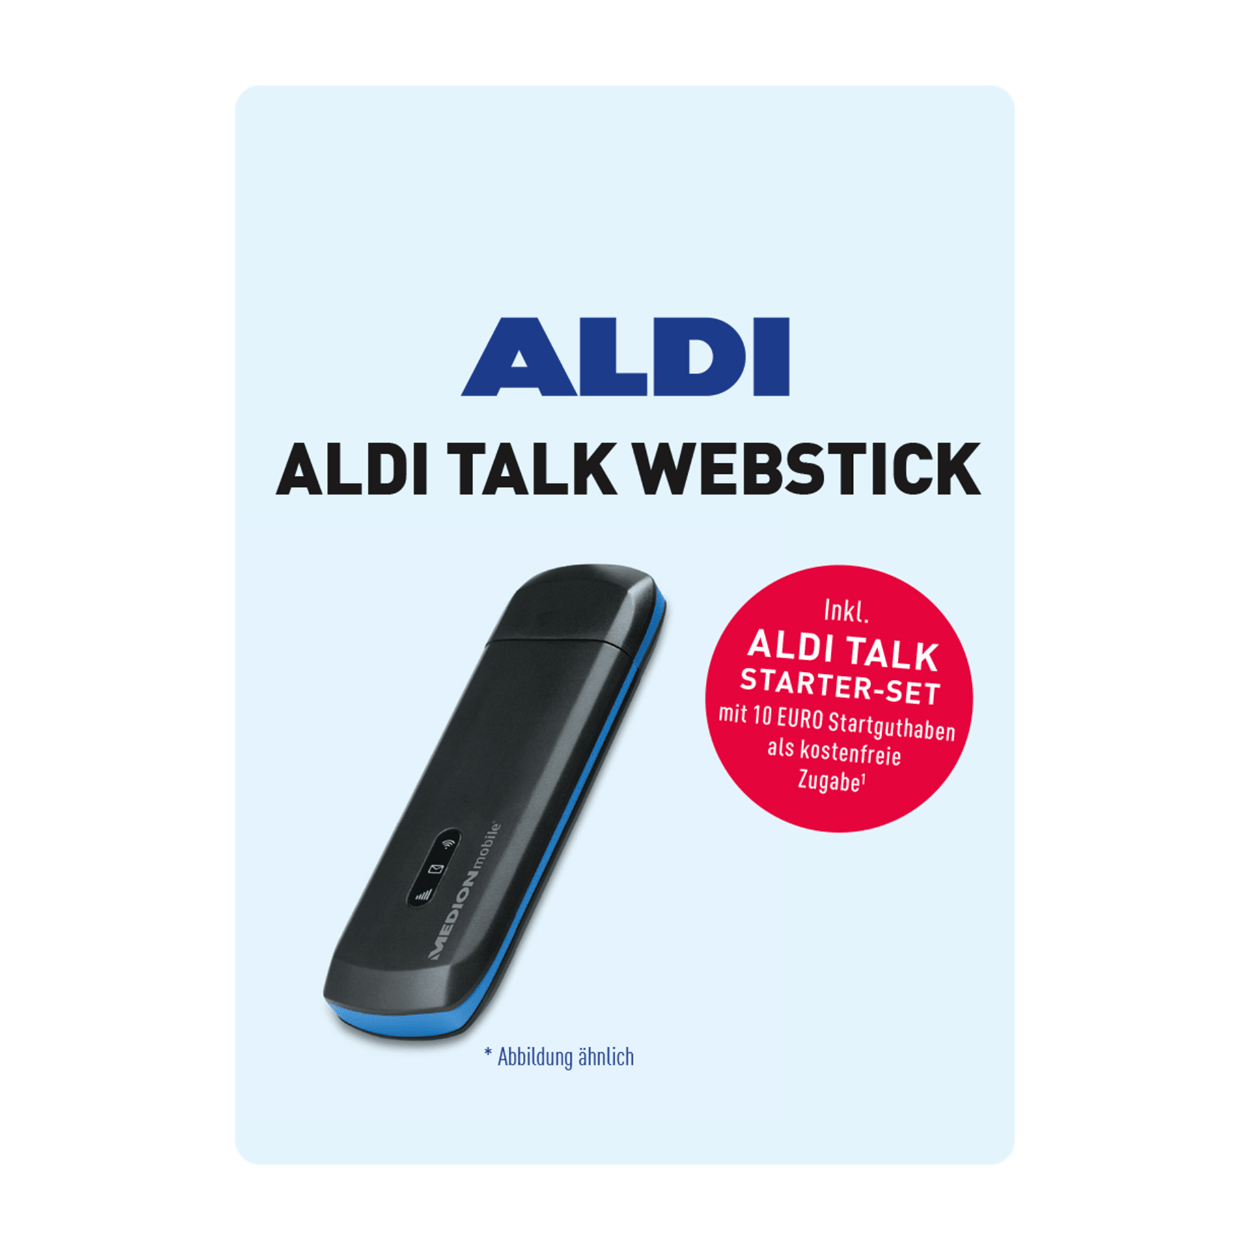 aldi talk webstick g nstig bei aldi nord. Black Bedroom Furniture Sets. Home Design Ideas